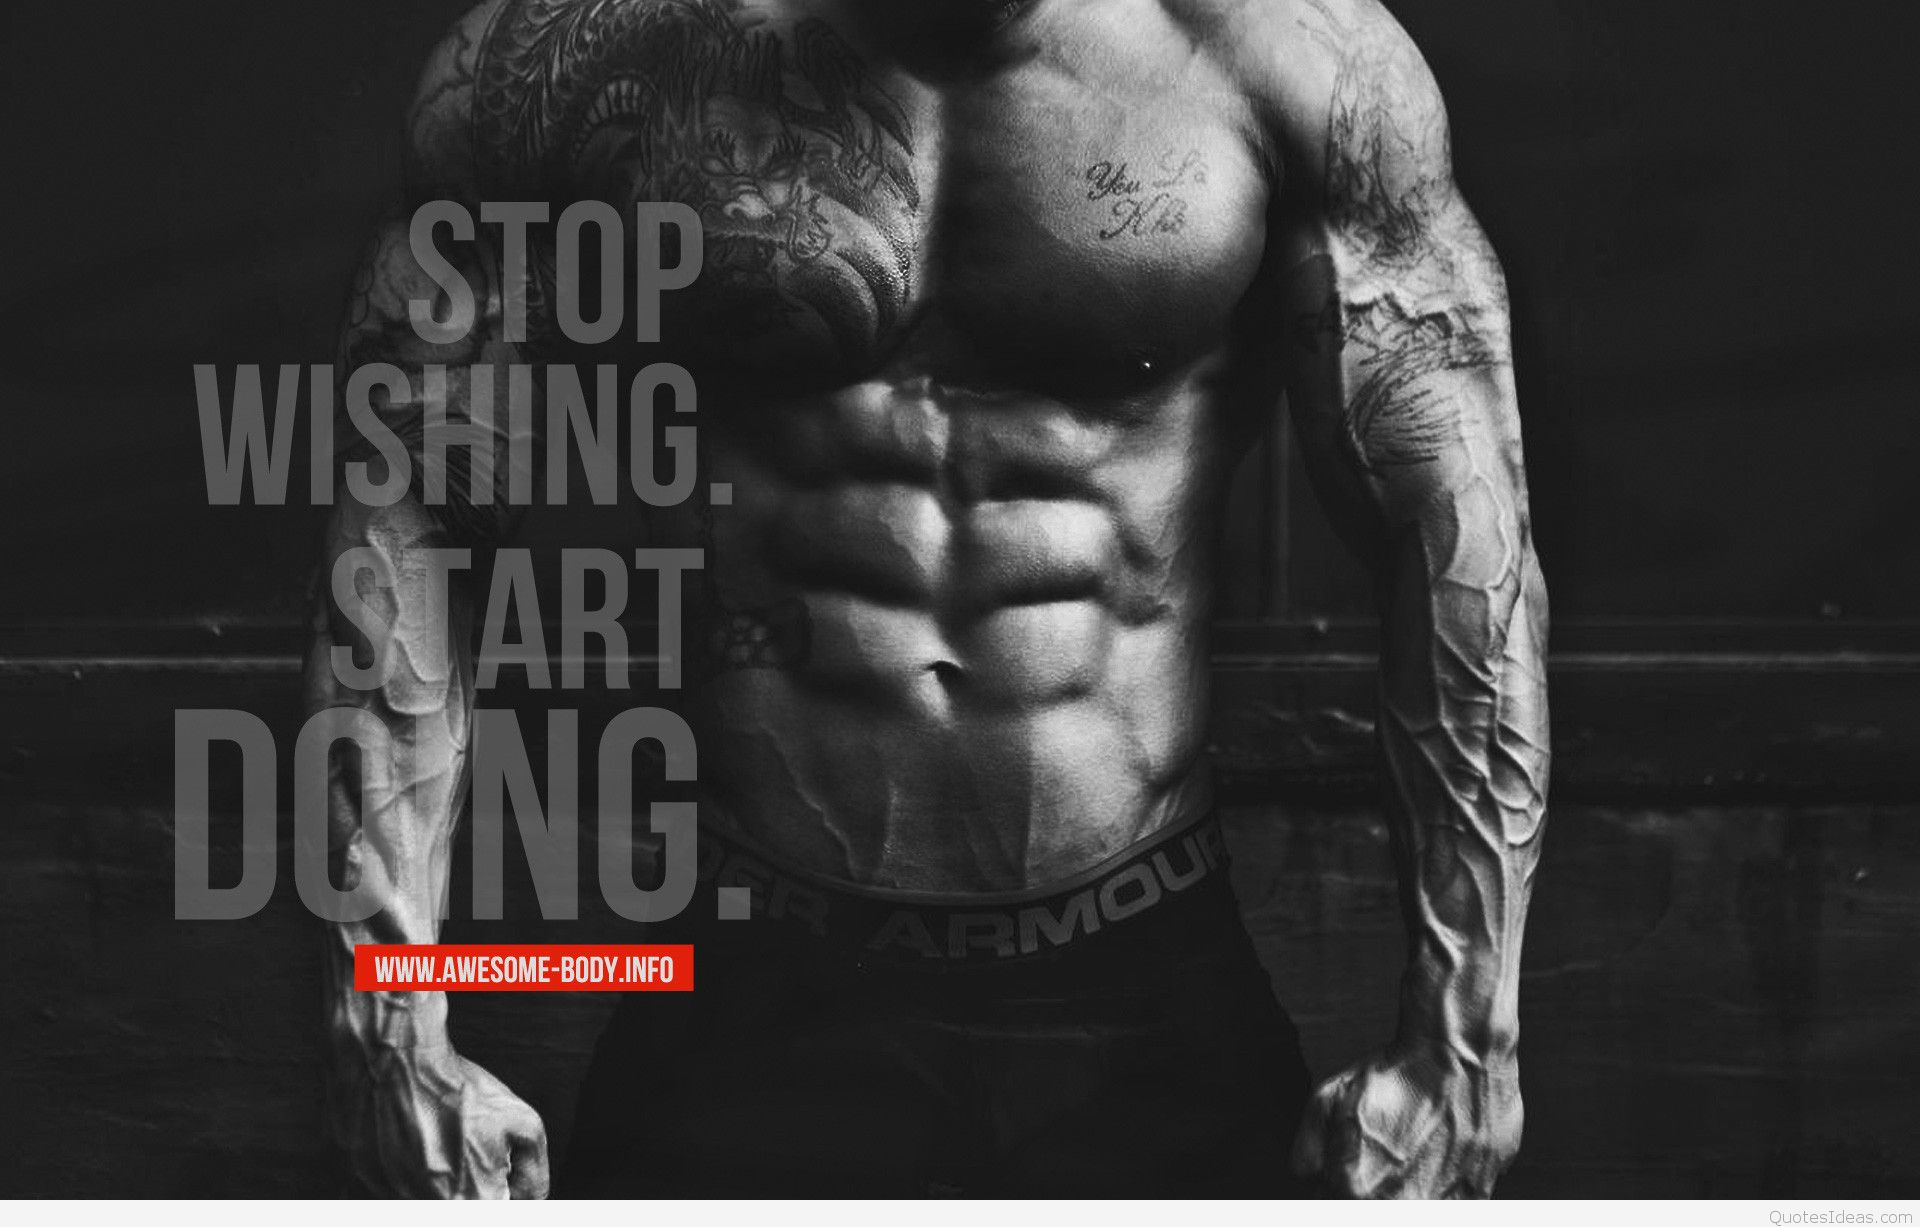 Motivational Fitness Image wallpaper with quote for mobile